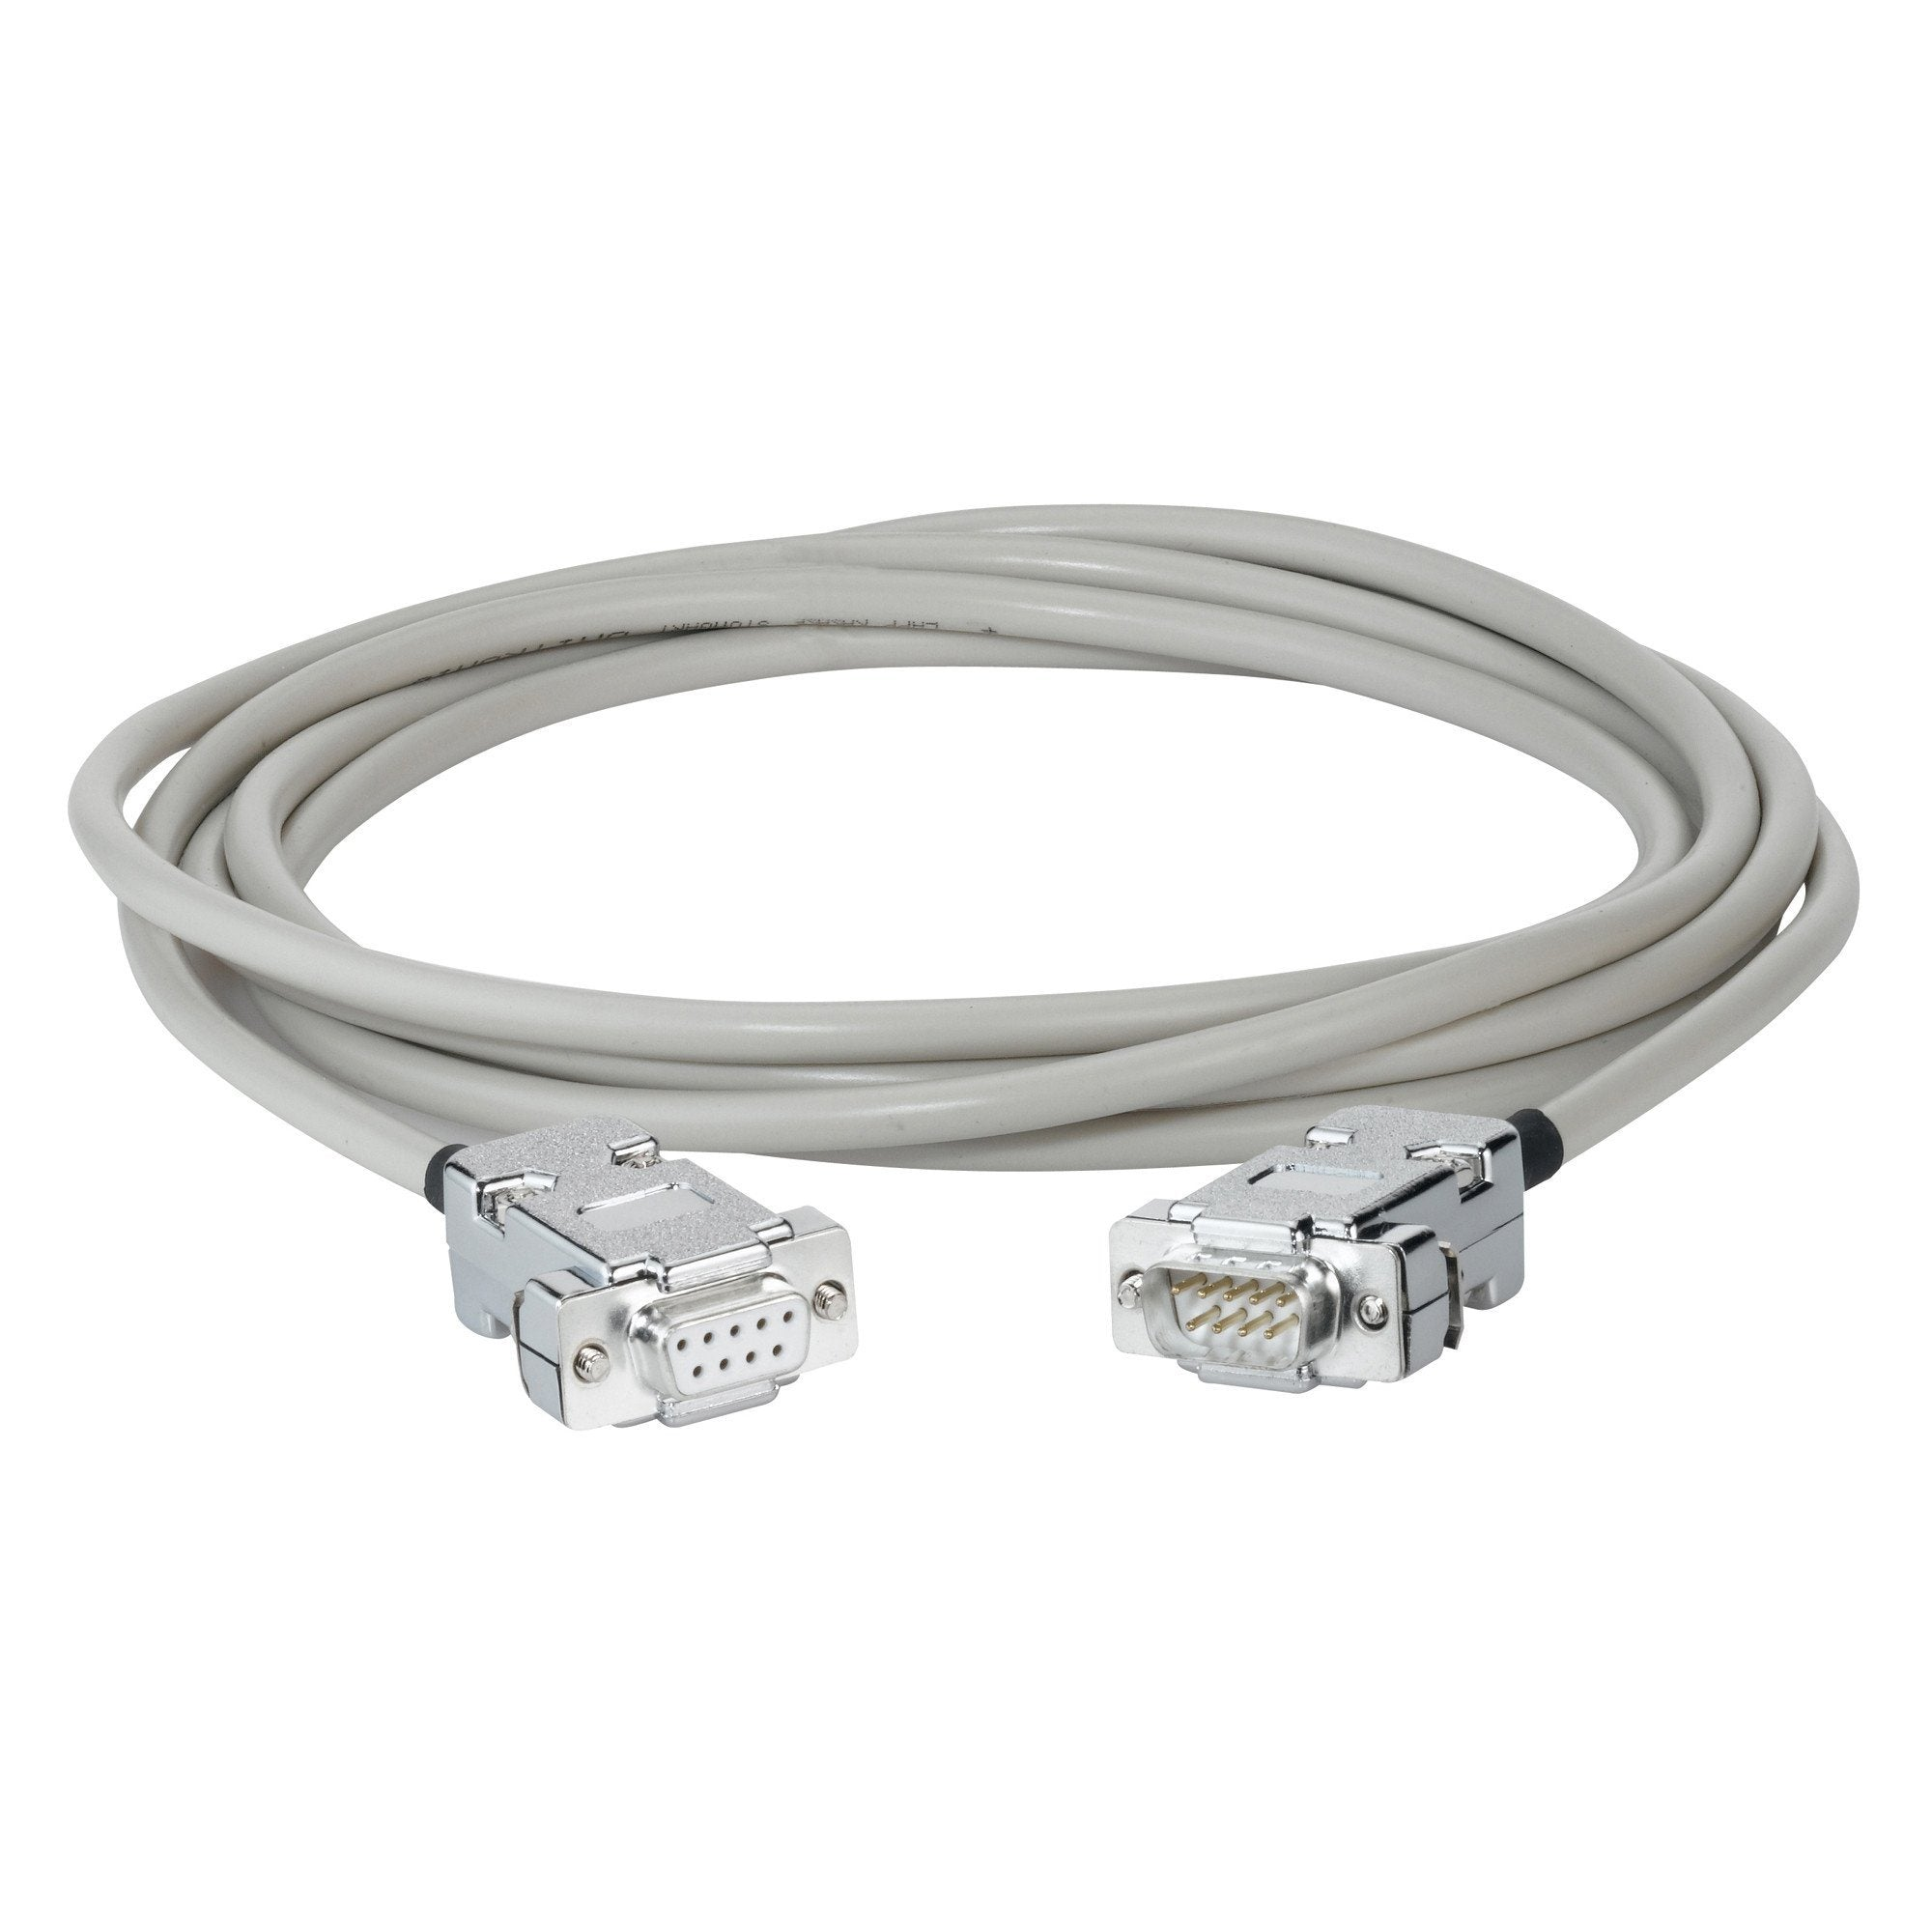 FusionChef RS232 Inerface Adapter Cable for FusionChef Diamond Model FusionChef Interface Cable FusionChef